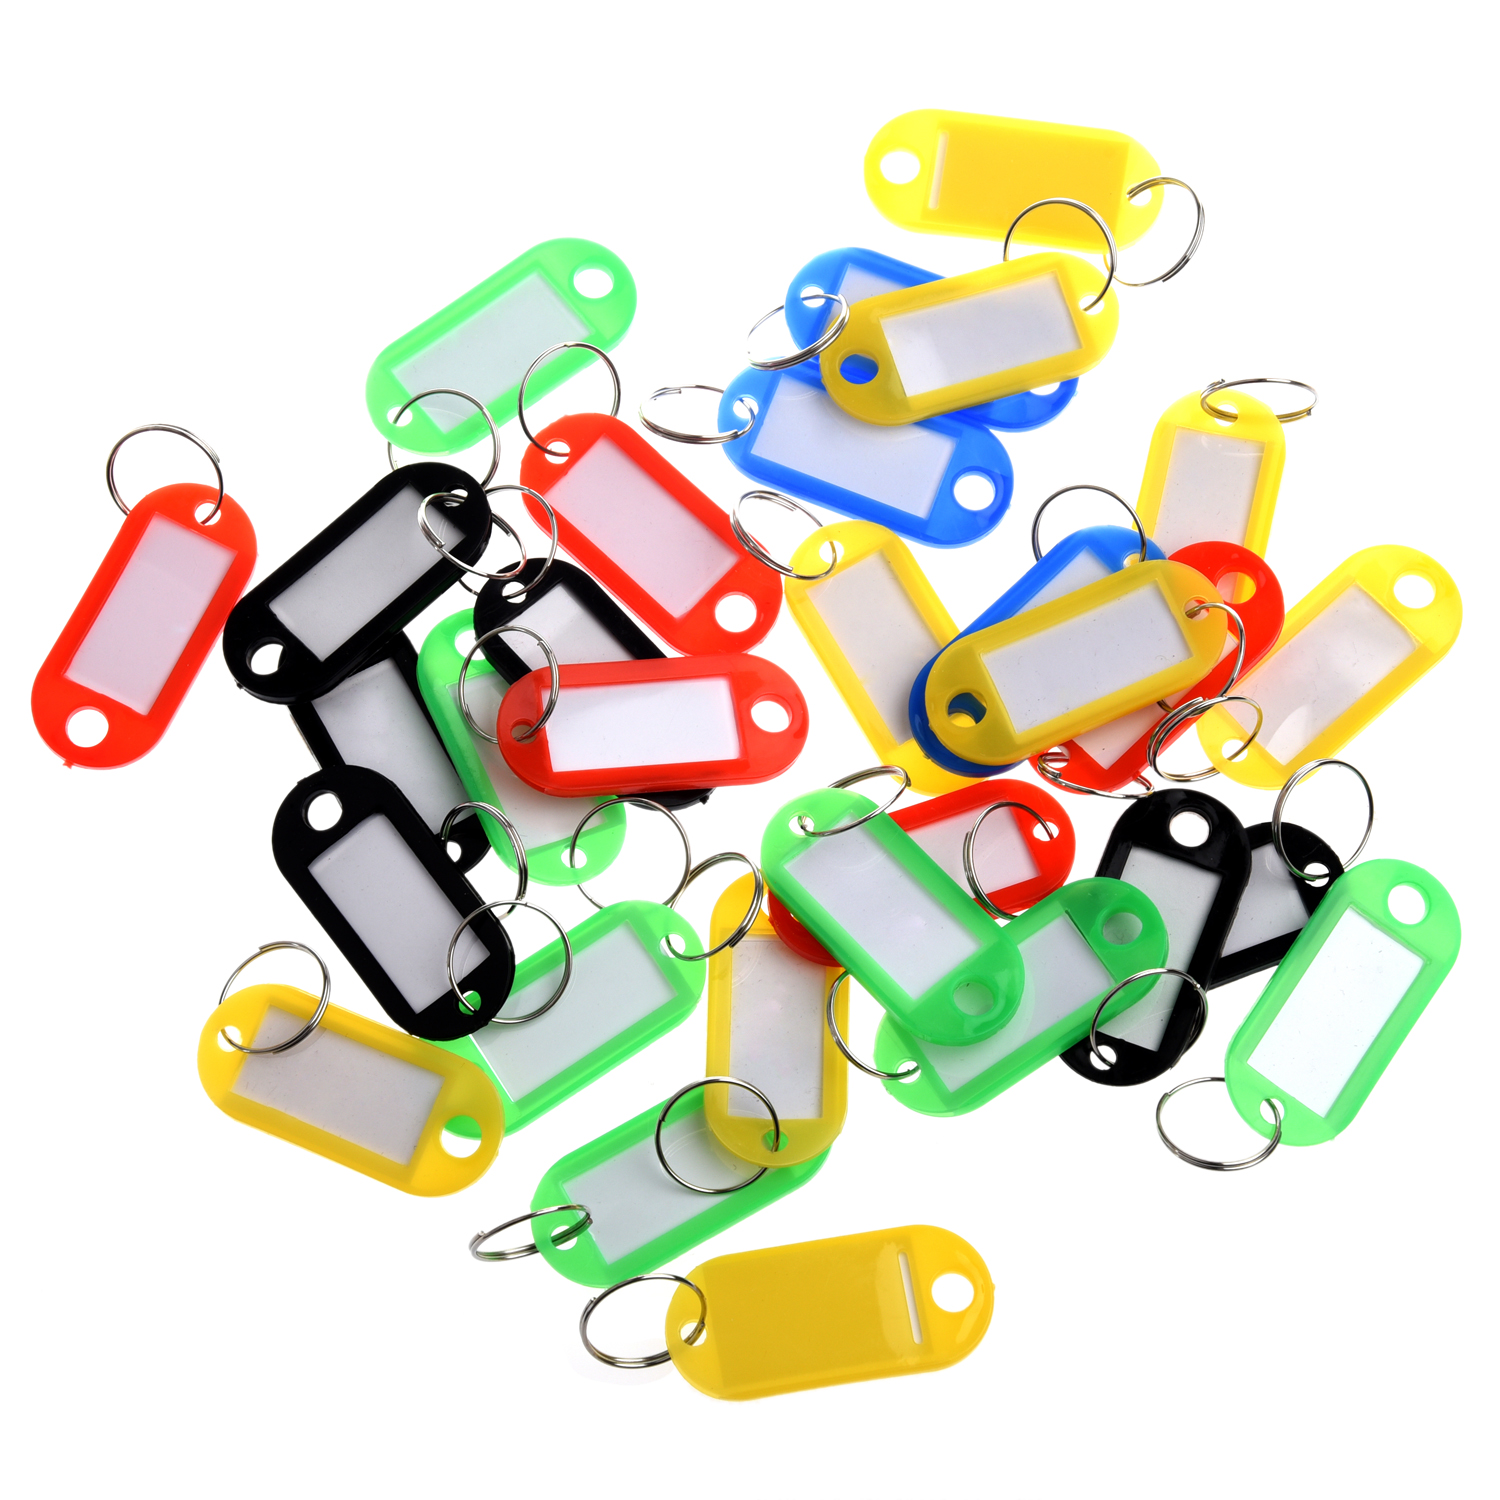 WCS-30 X Coloured Plastic Key Fobs Luggage ID Tags Labels with Name Cards, Ideal For Many Uses - Bunches Of Keys, L